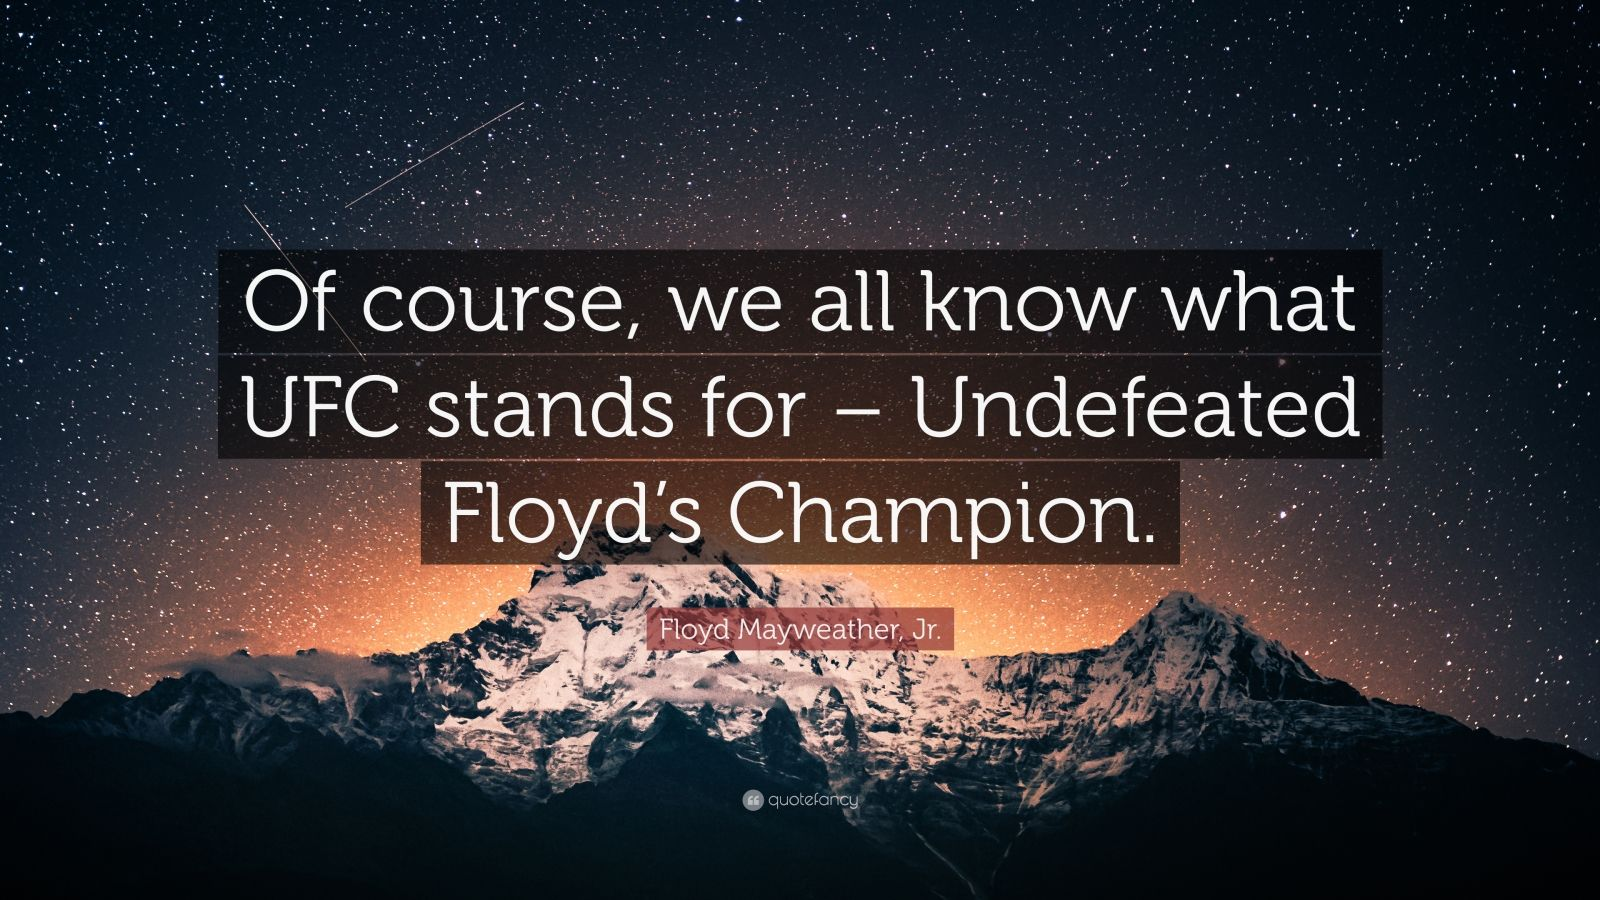 """Floyd Mayweather, Jr. Quote: """"Of course, we all know what UFC stands for – Undefeated Floyd's Champion."""""""